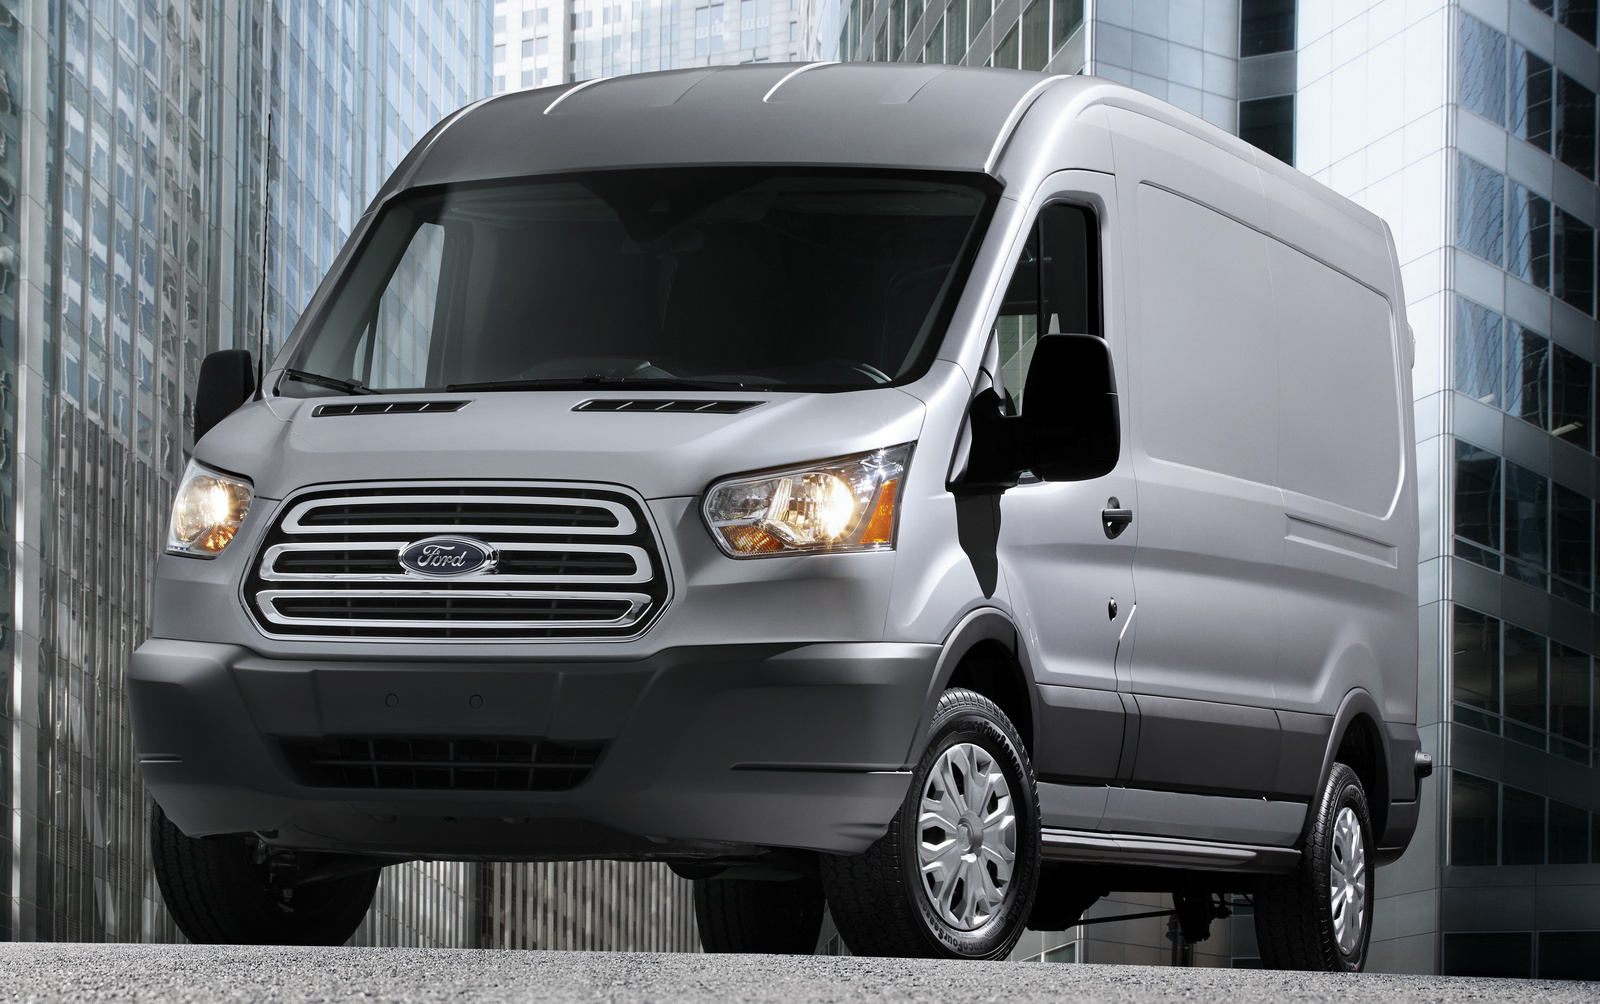 New 2015 Ford Transit 150 Wagon